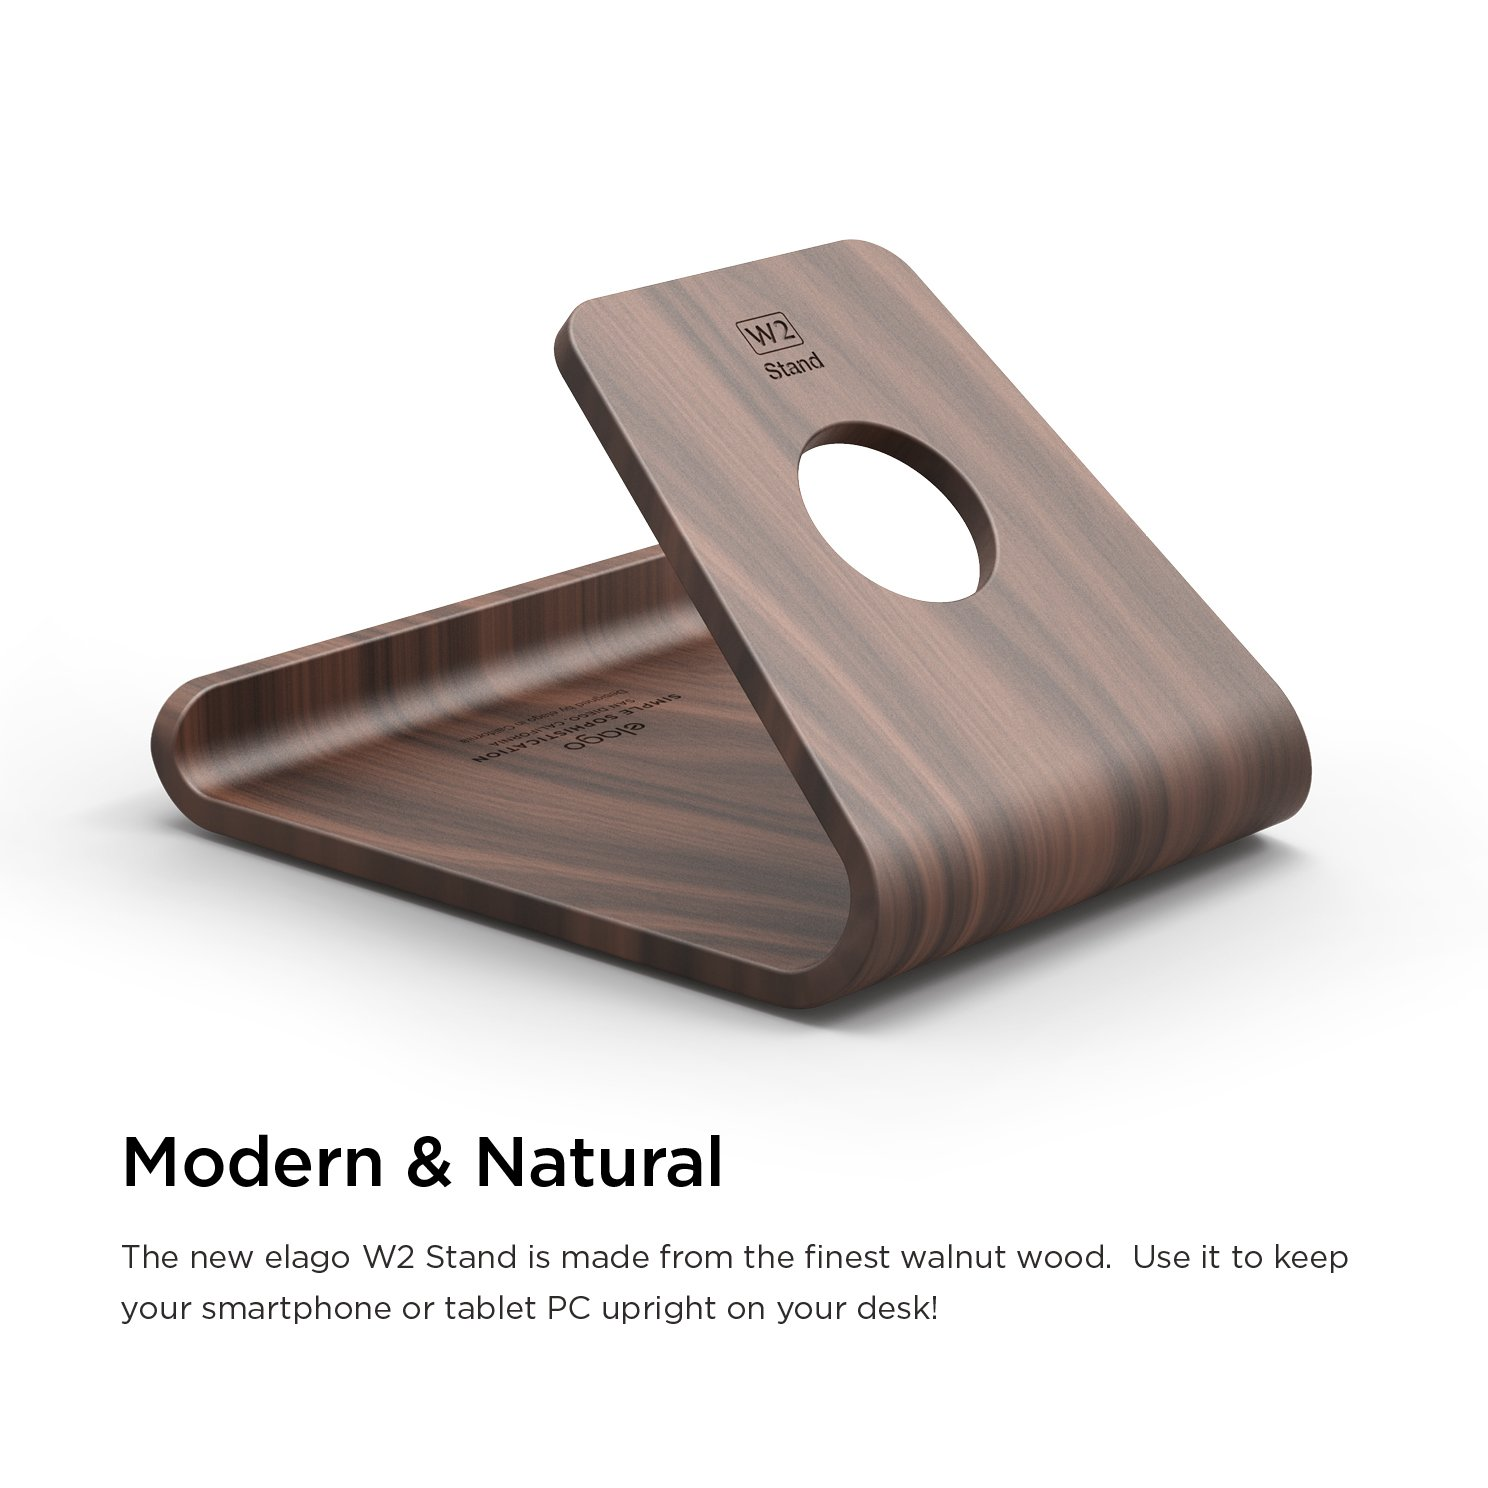 mount huawei mobile xiaomi olaf ipad universal tablet for holder products samsung desk phone stand iphone smartphone